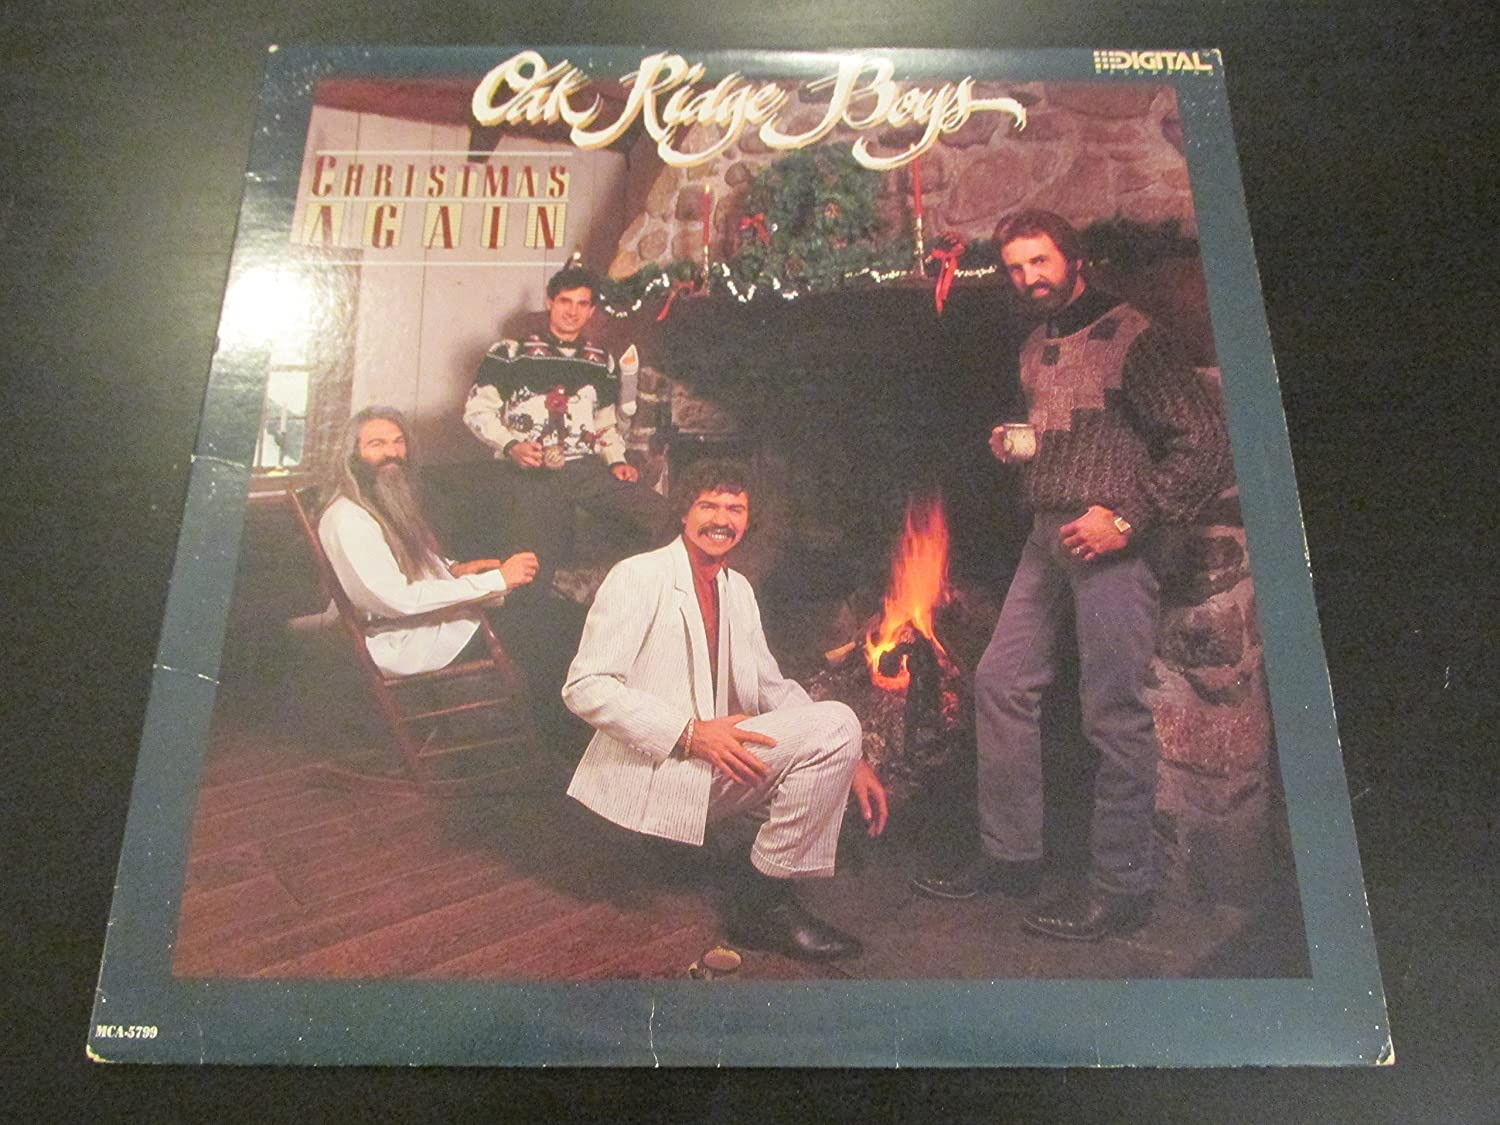 Oak Ridge Boys - Oak Ridge Boys: Christmas again (US, 1986) [LP ...